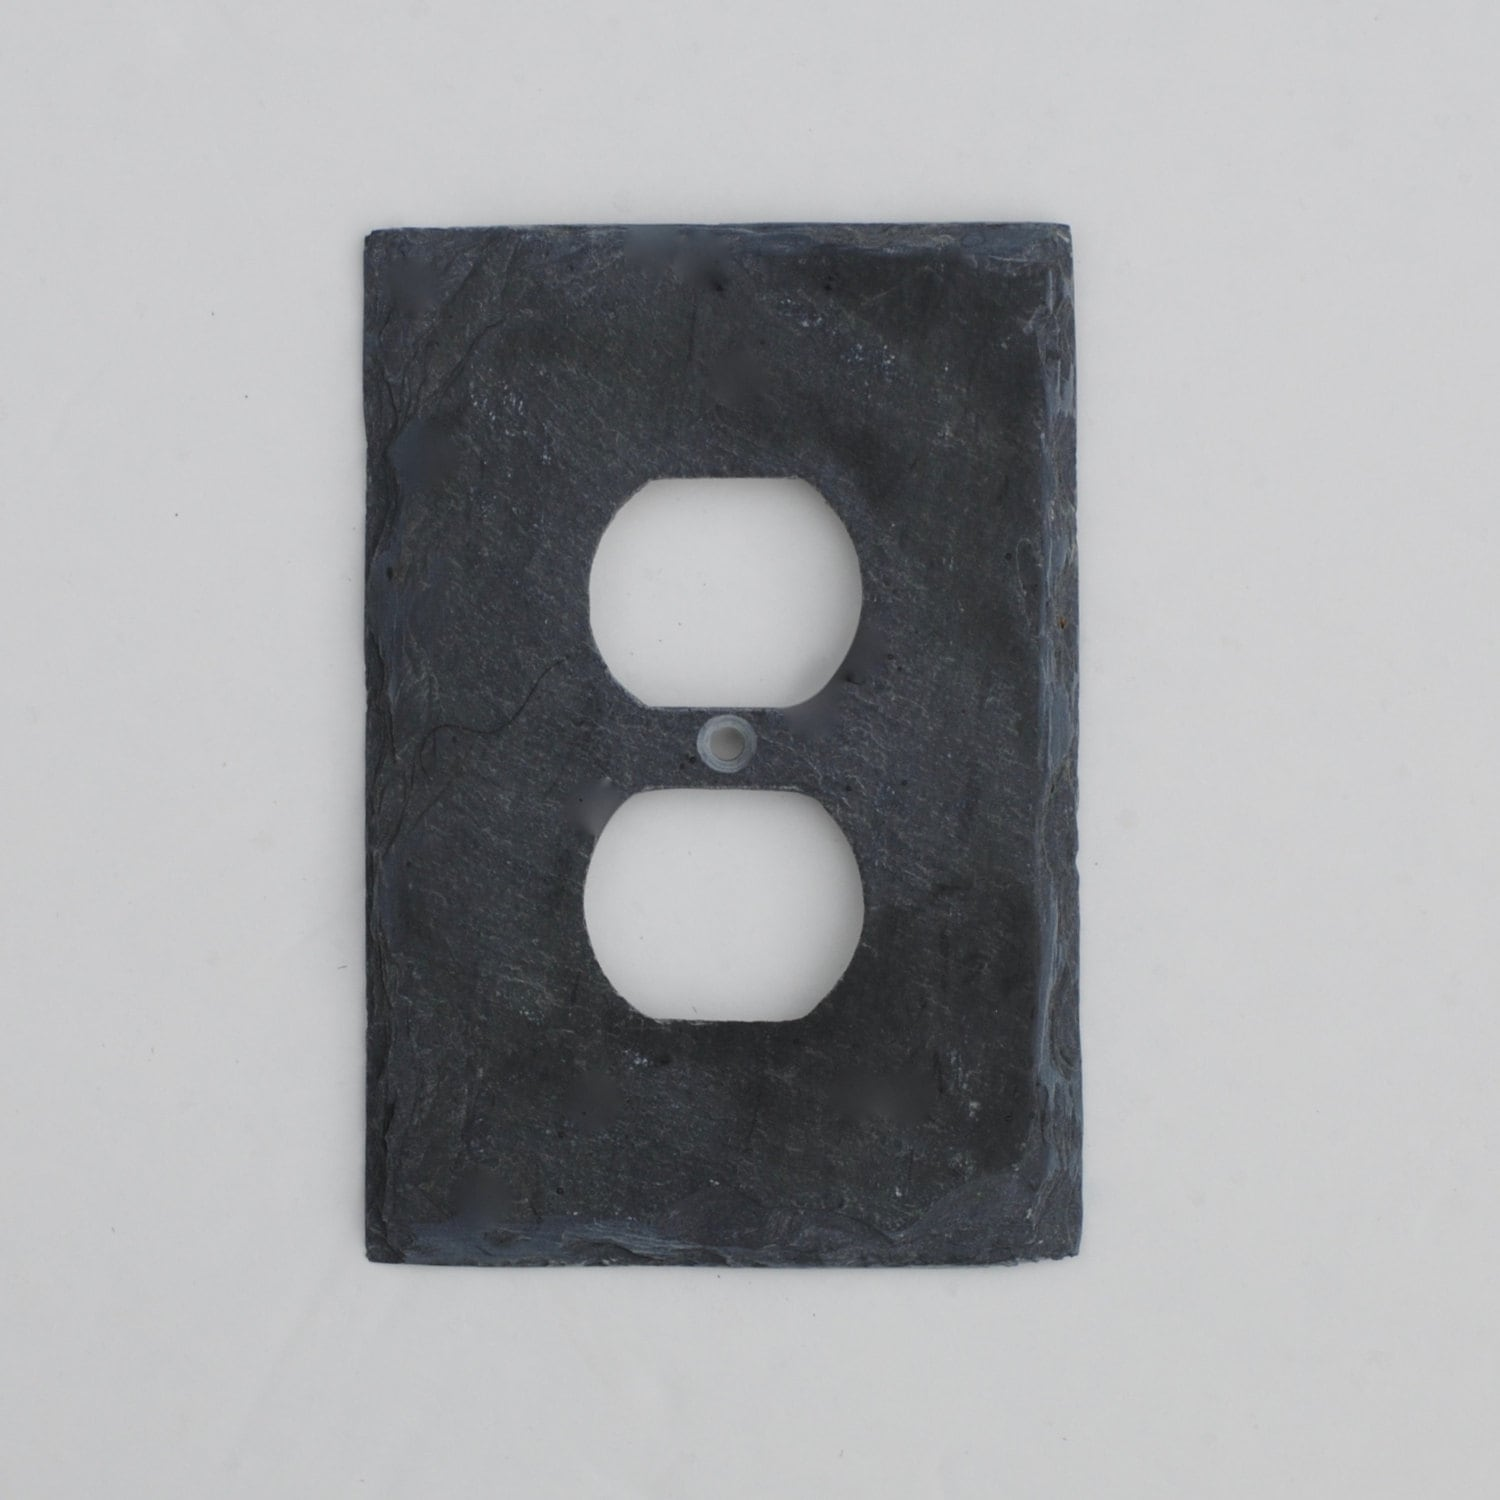 Decorative Single Outlet Cover Switch Plate Wall Plate